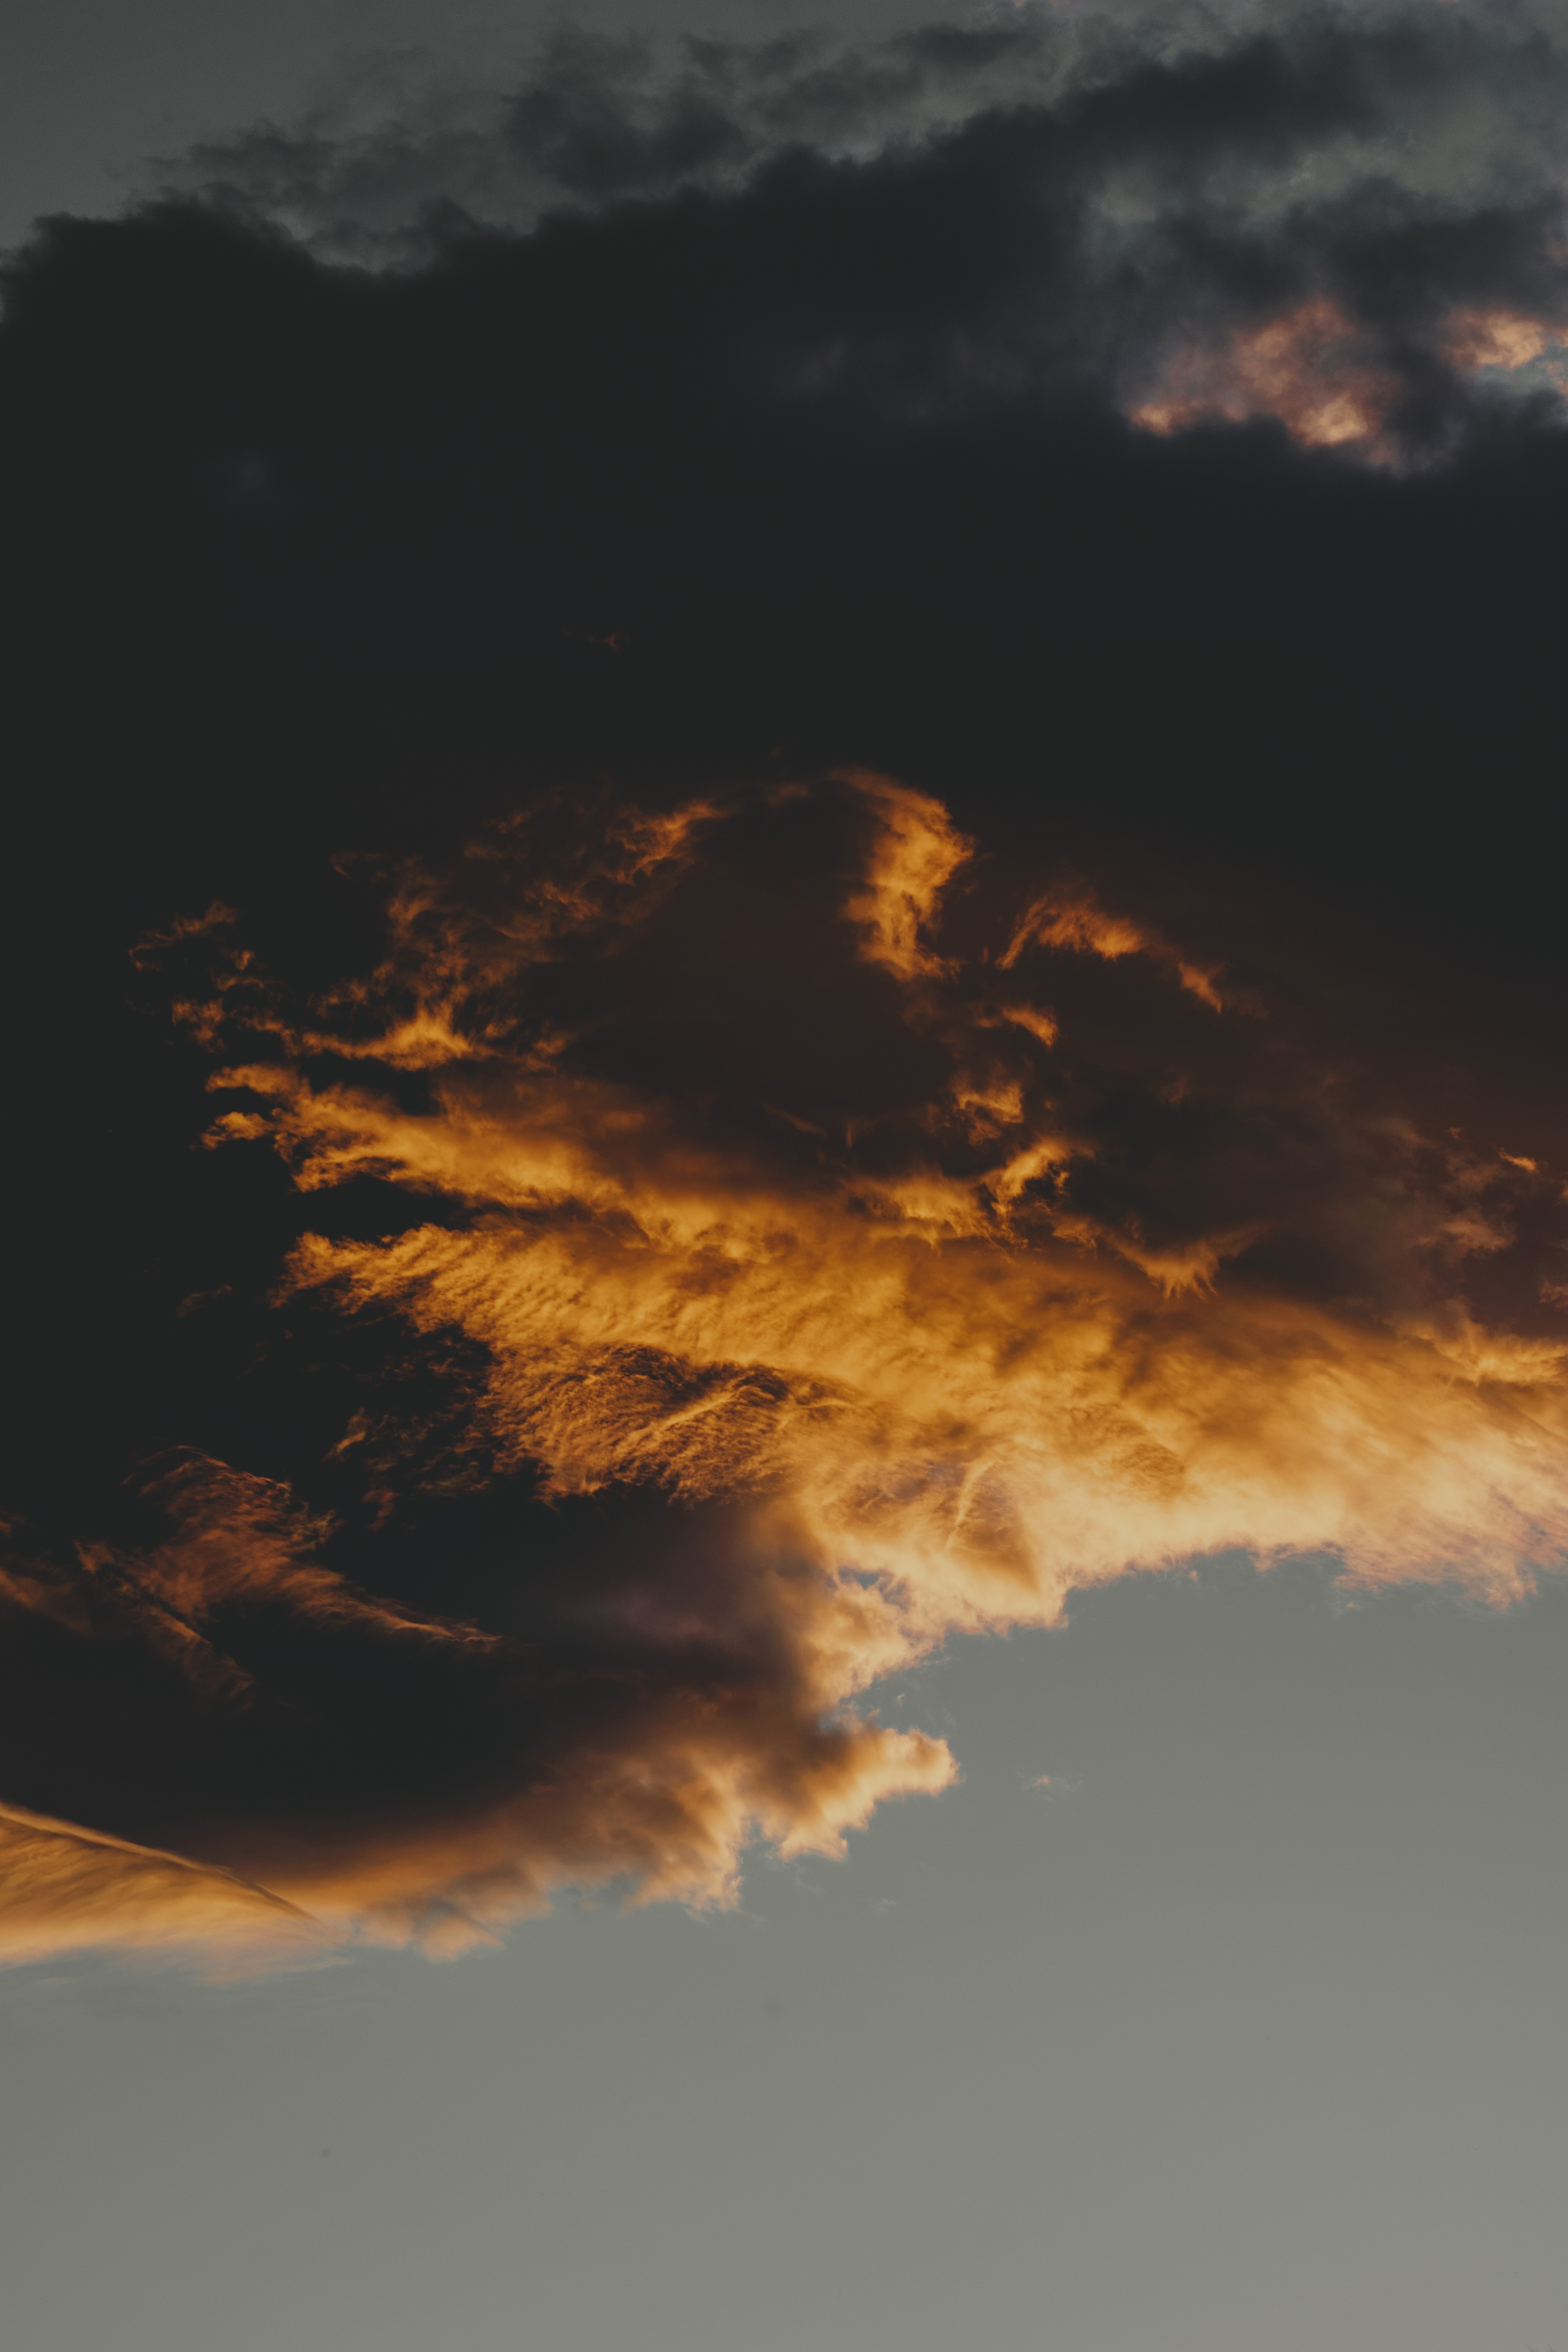 cloud formation during daytime